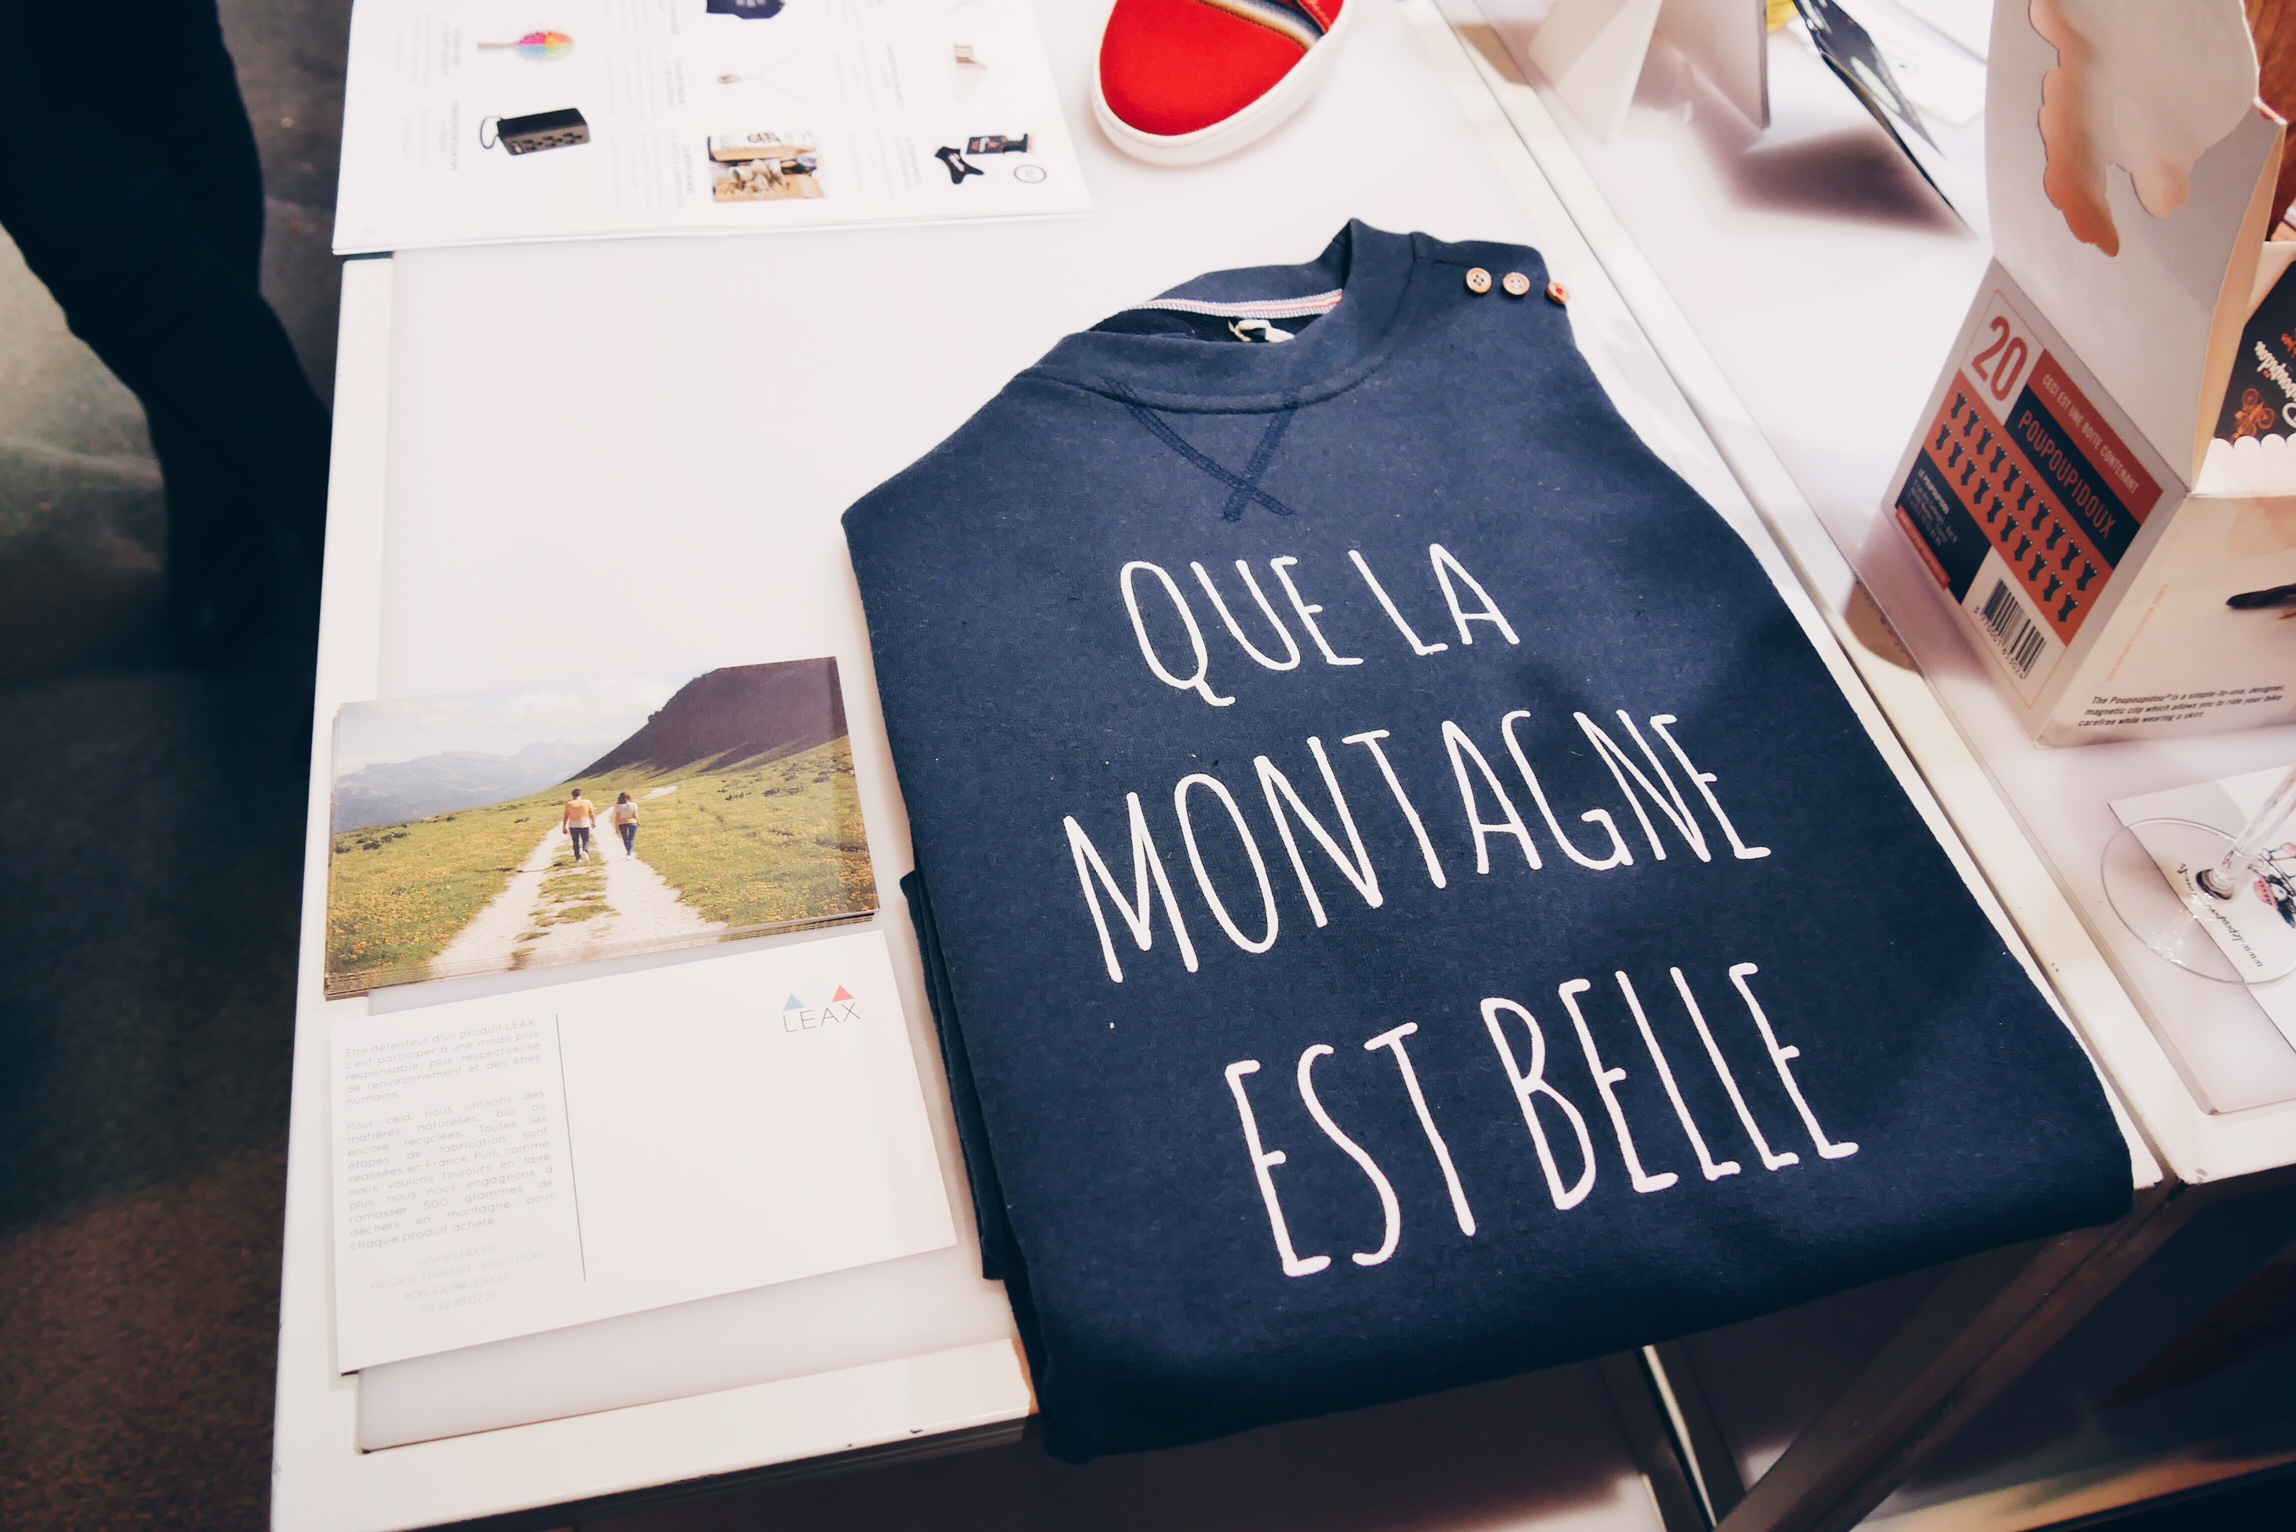 Sweat-shirt-Que-la-montagne-est-belle-Leax-vetement-écoresponsable-made-in-France-Noel-French-Tech-photo-usofparis-blog